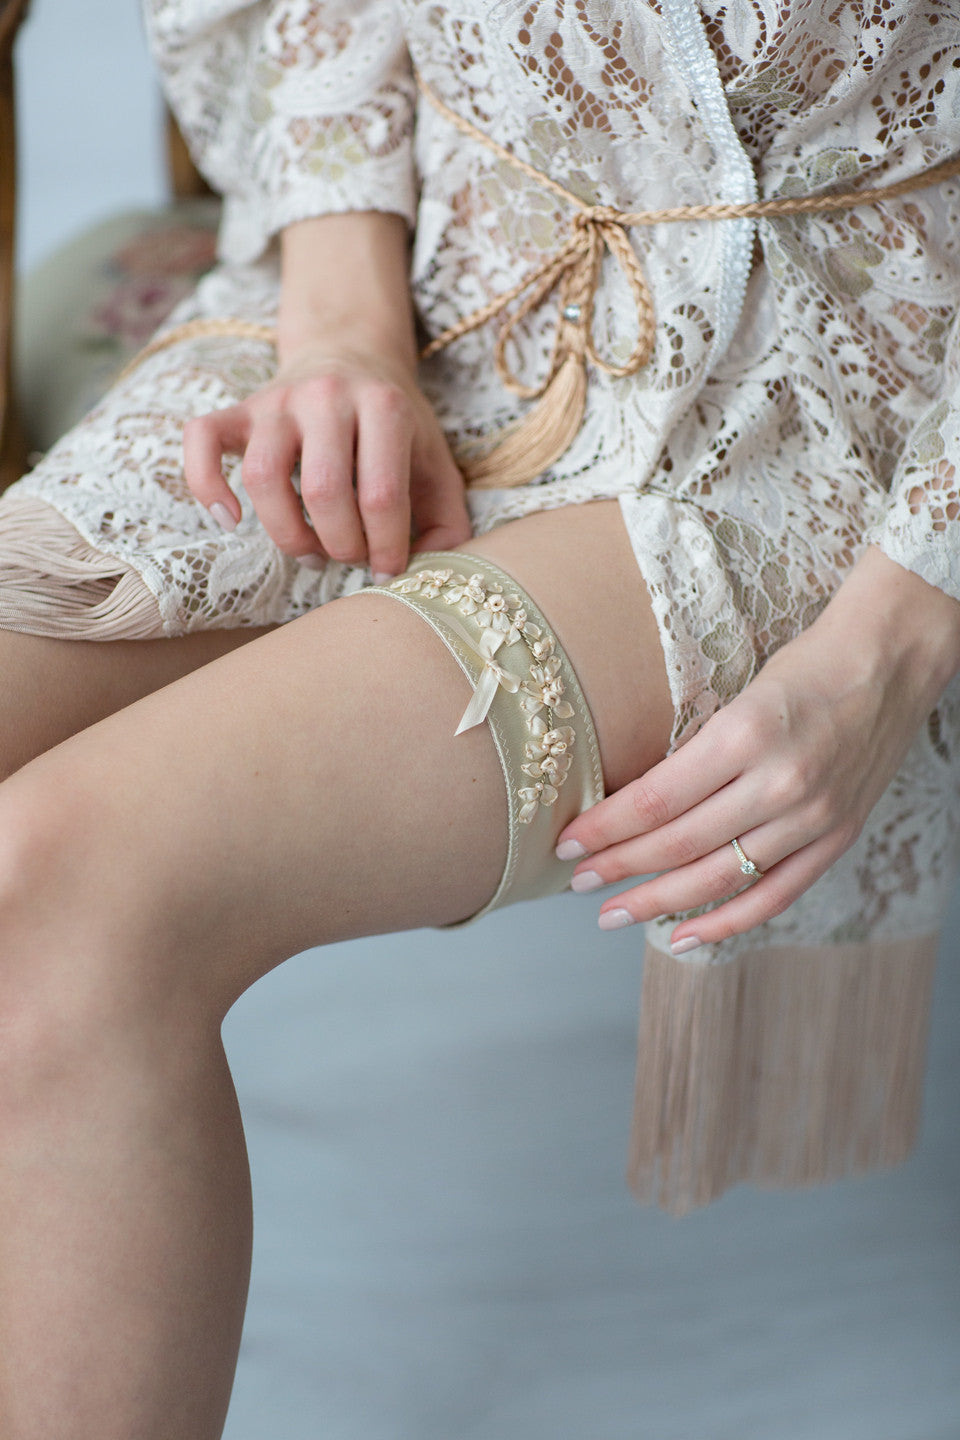 Wedding Bridal Garter Gold Embroidery Flowers by Liumy - Liumy